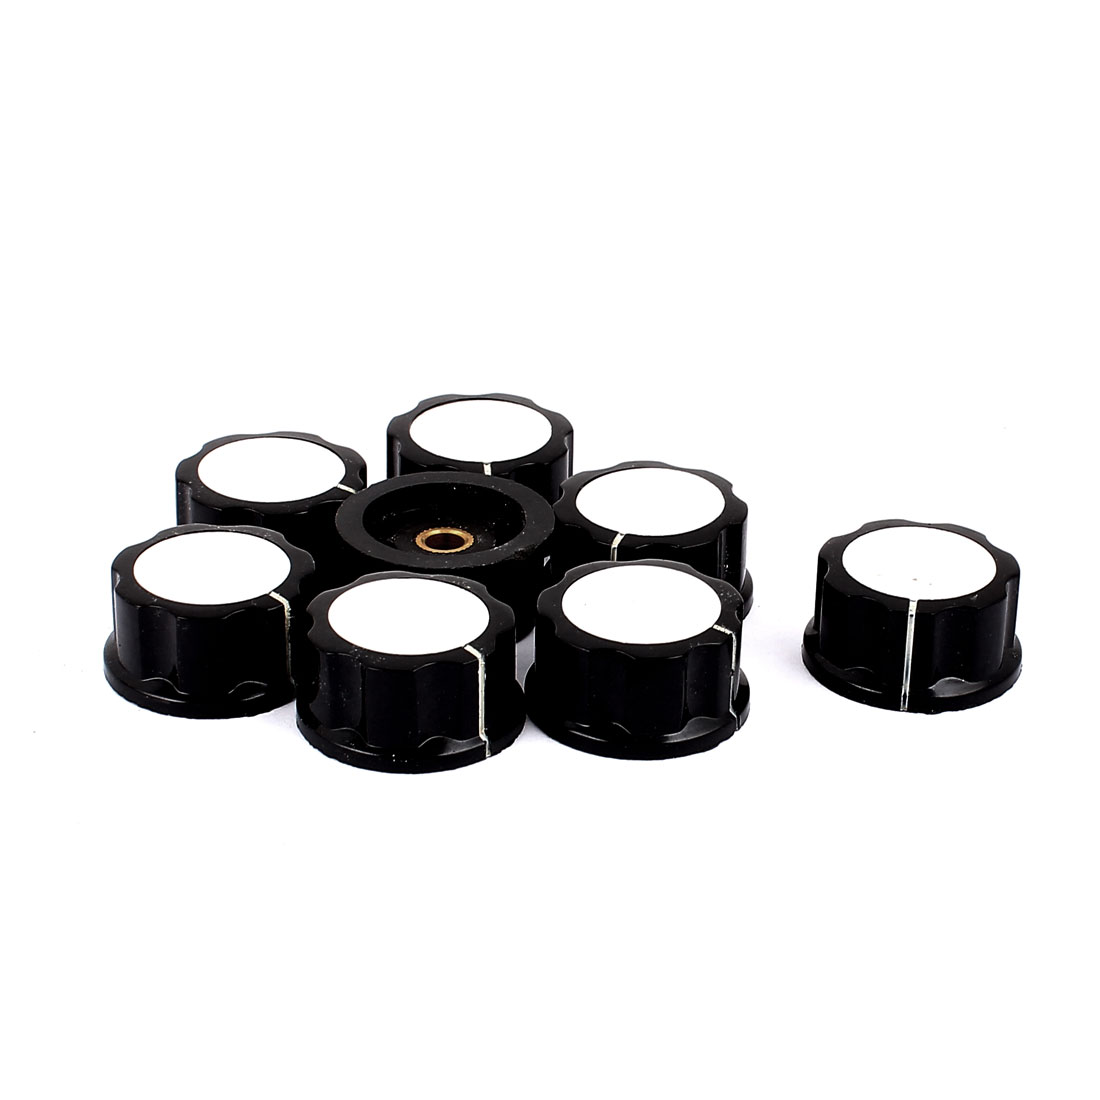 8 Pcs 30mm x 16mm Potentiometer Control Switch Volume Caps Knurled Button Cap 6mm Diameter